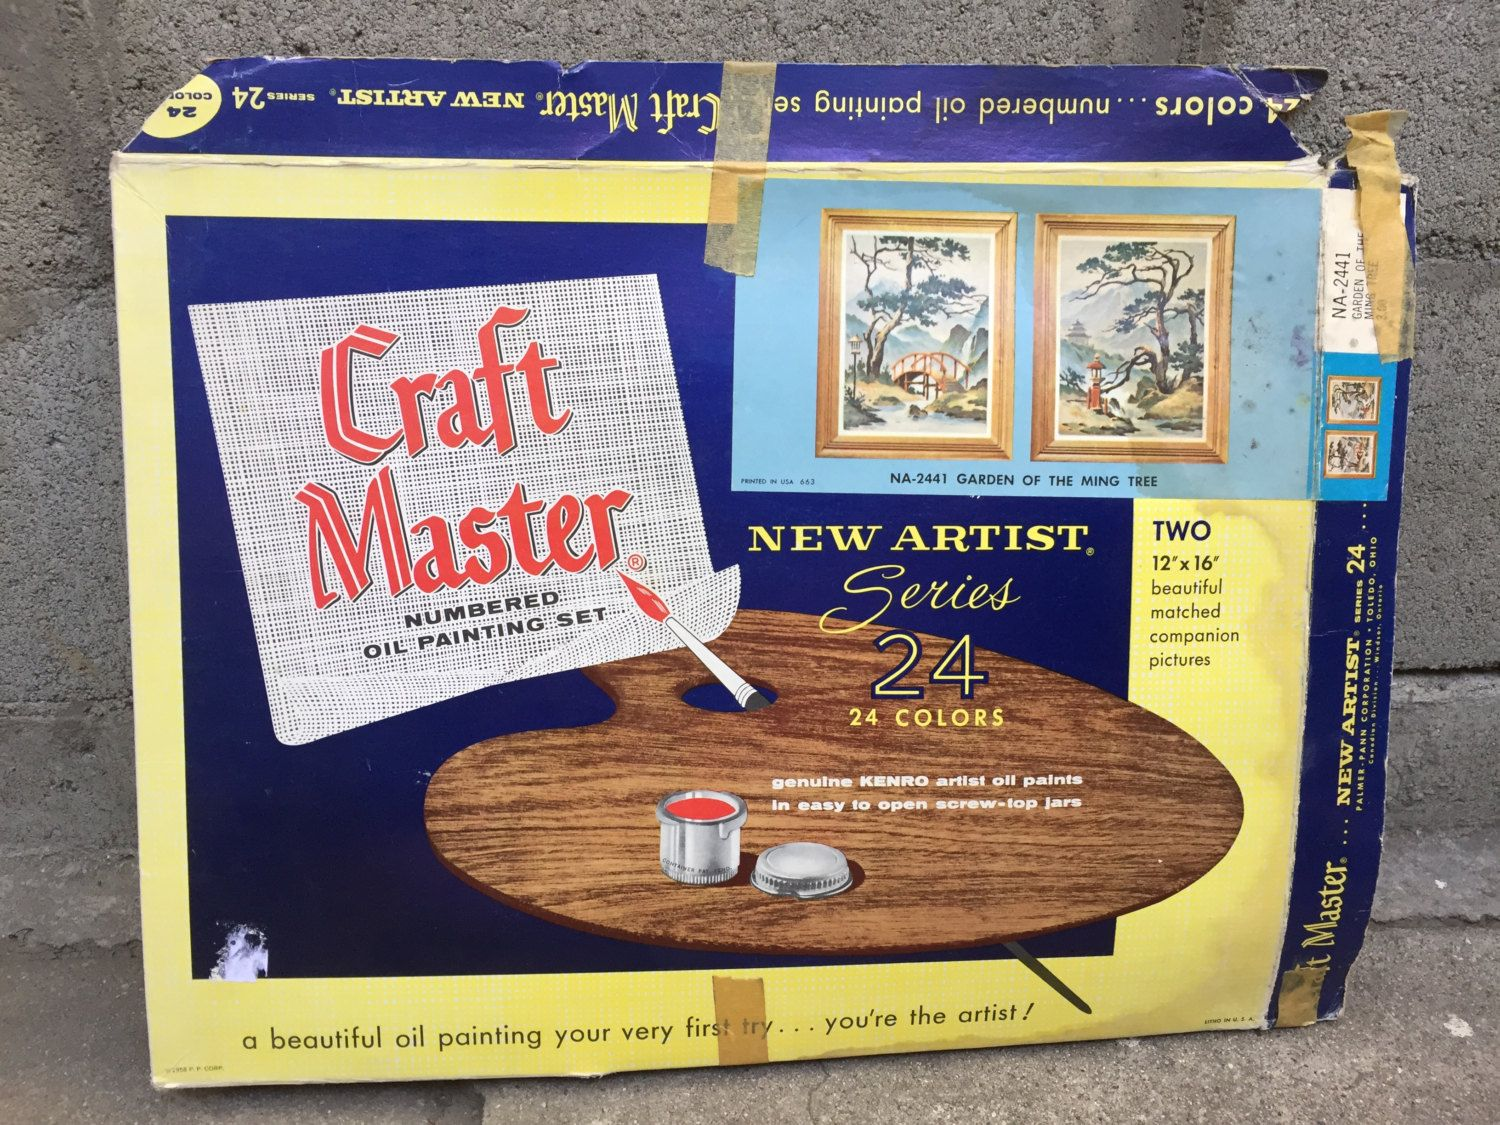 Craft master paint by number kits - 1963 Craft Master Paint By Numbers Kit Garden Of The Ming Tree